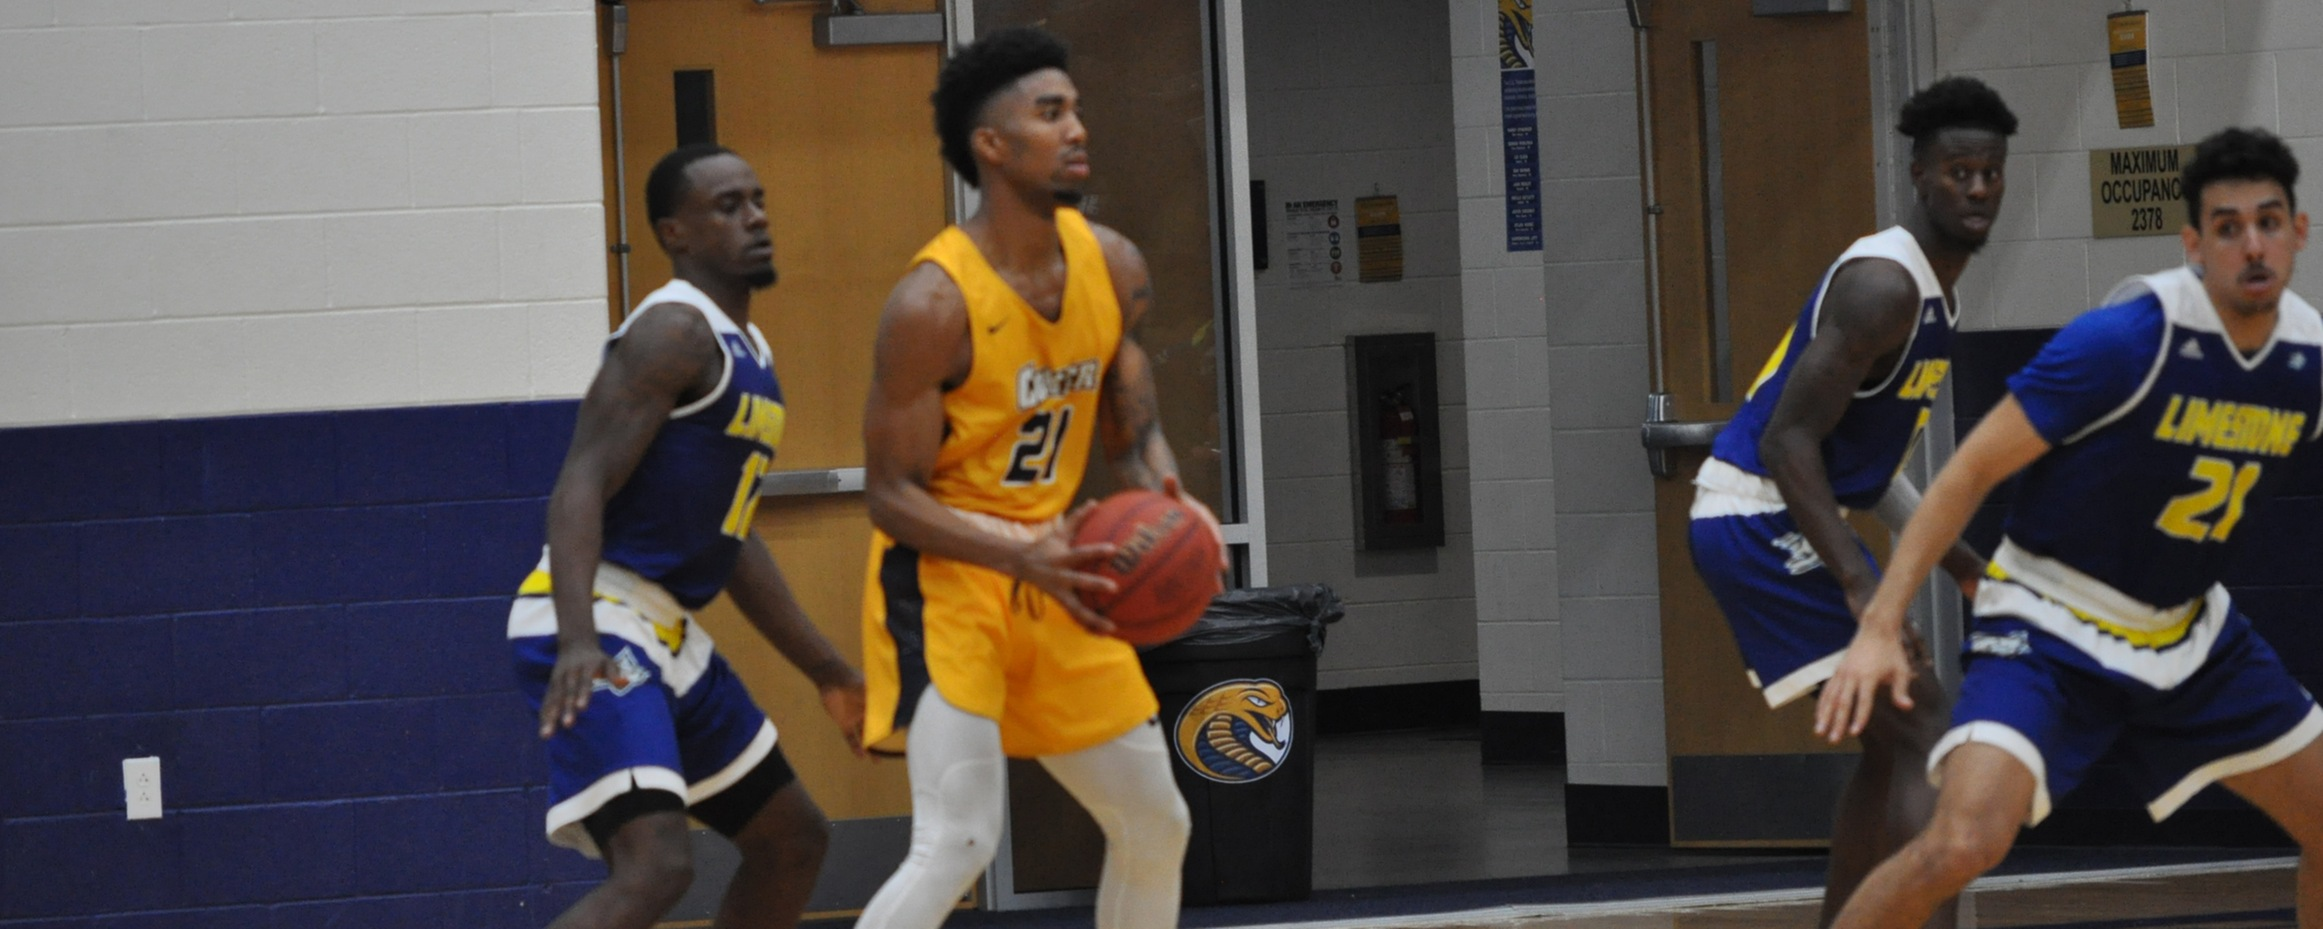 Men's Basketball Falls to No. 9 Lincoln Memorial on Saturday